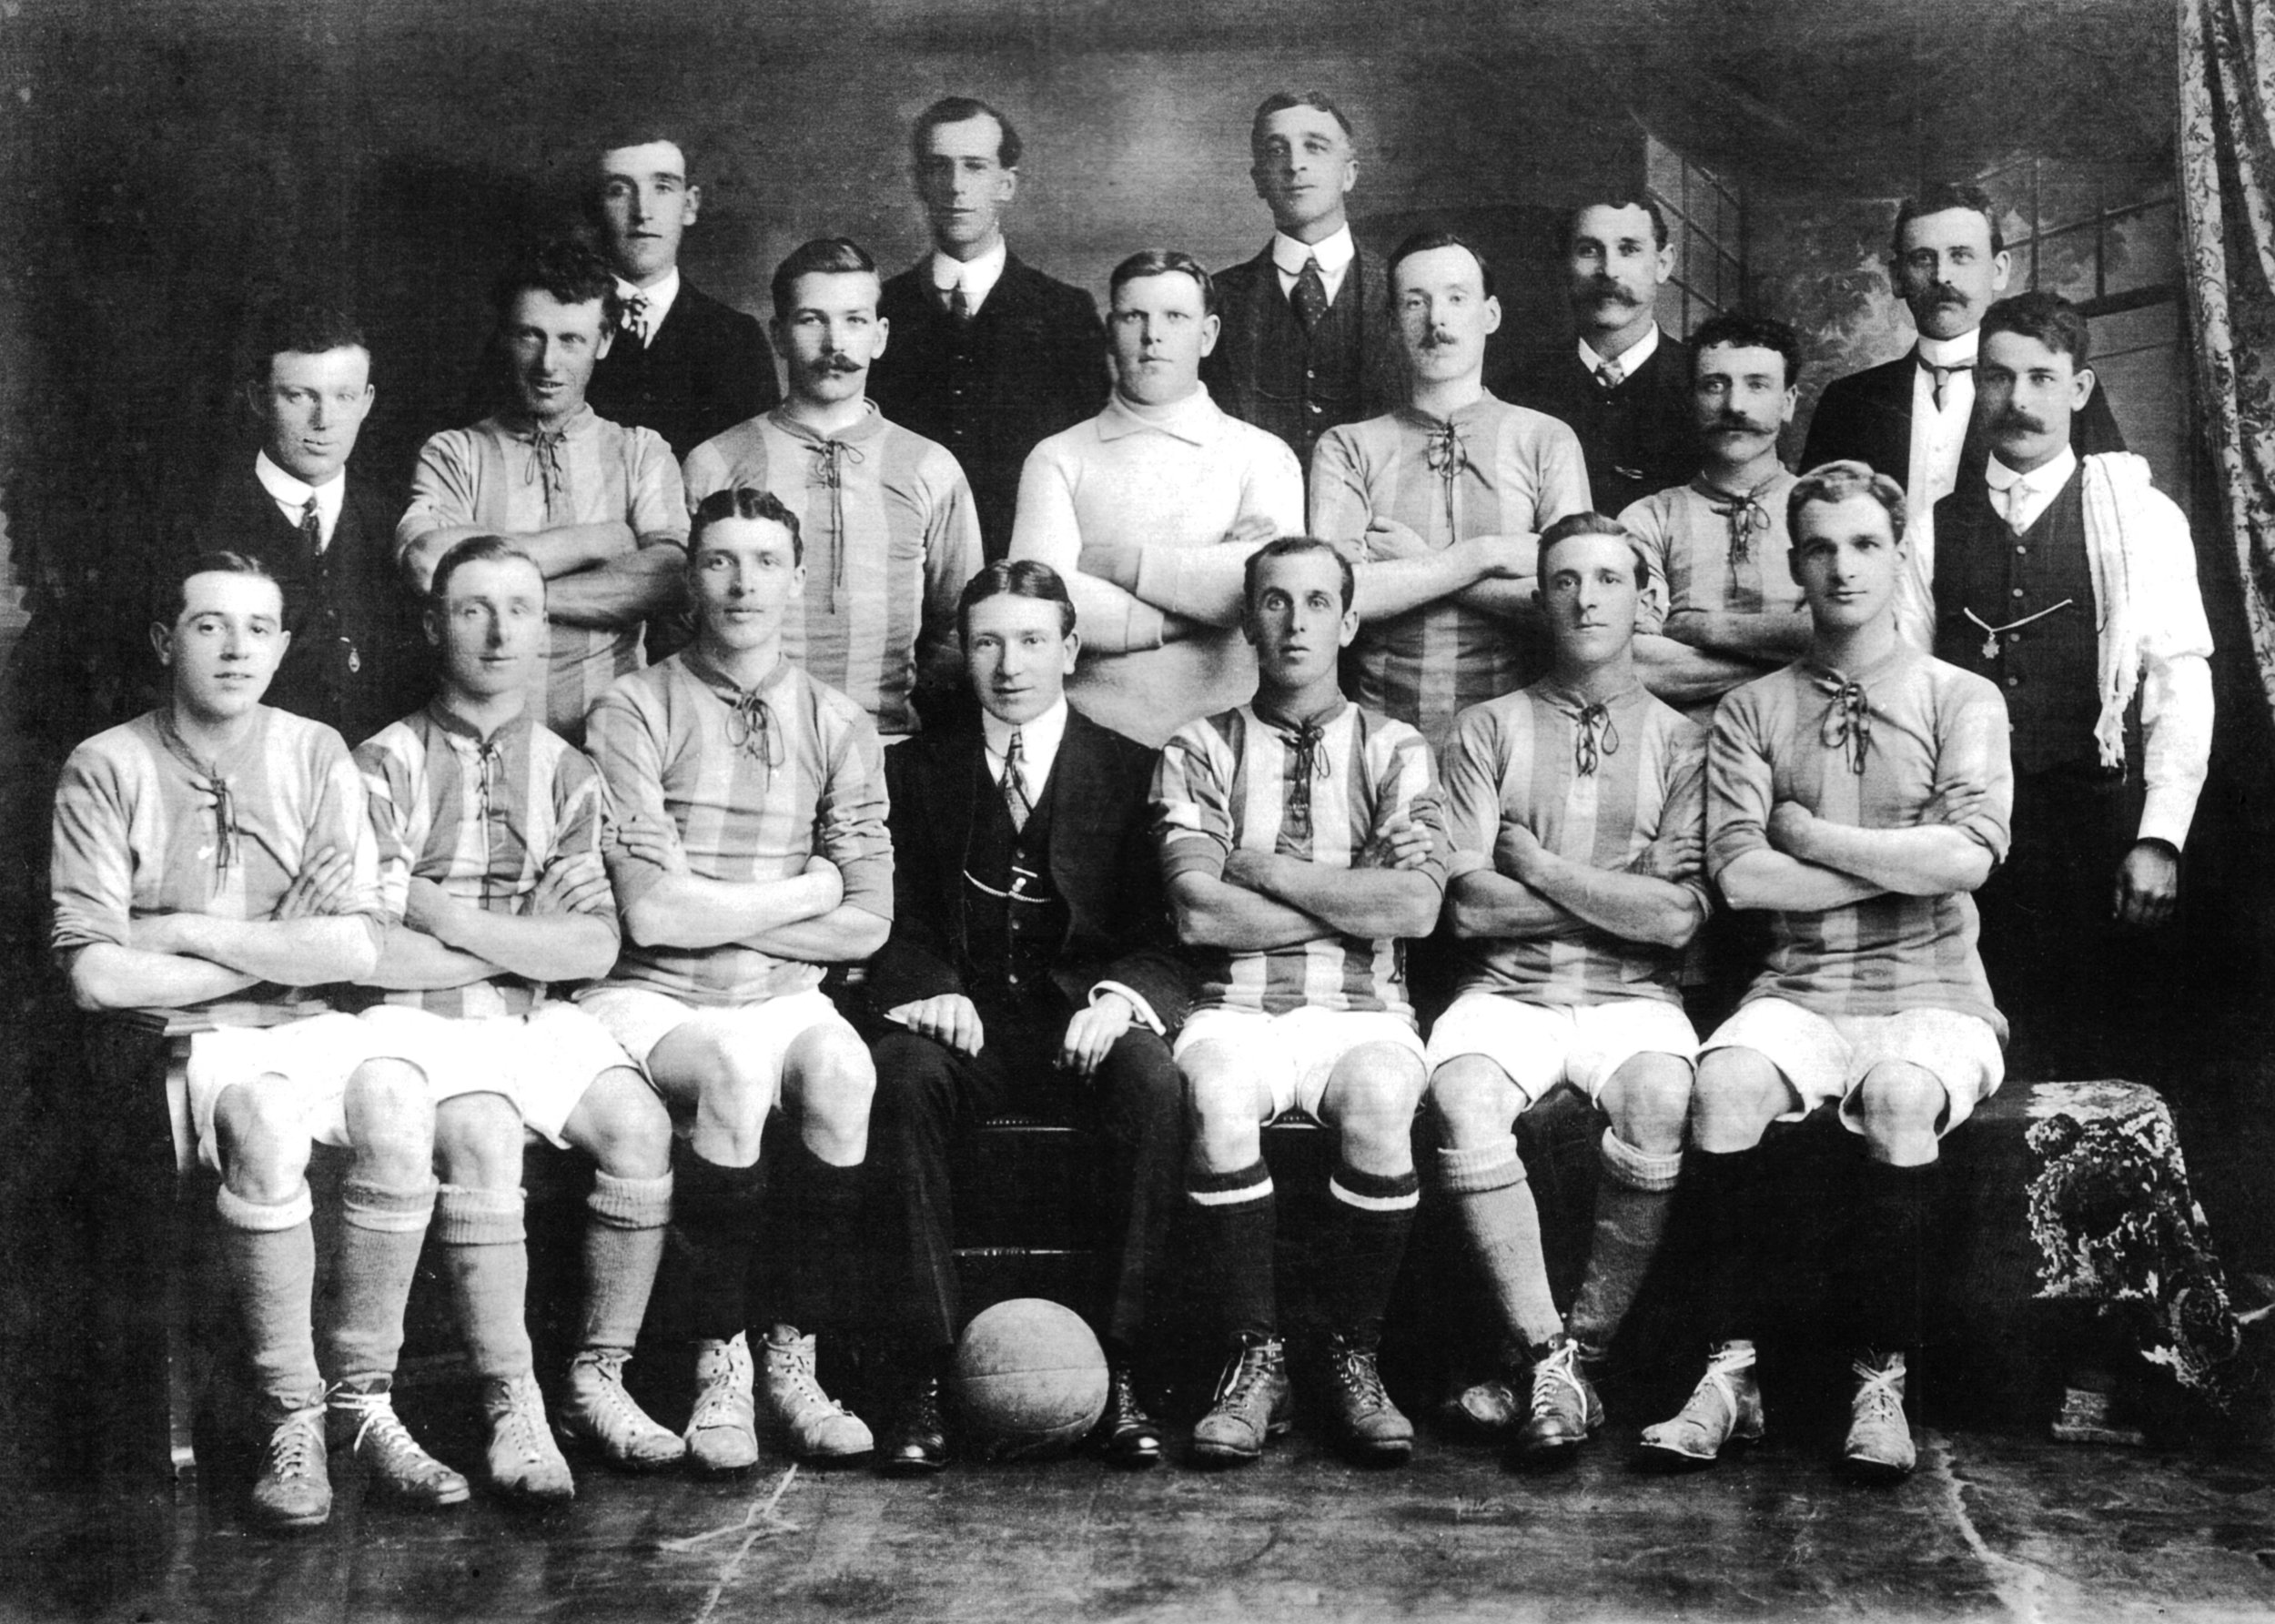 Caledonian Soccer Team in 1913 - This team was effectively decimated as a result of the war and were not able to